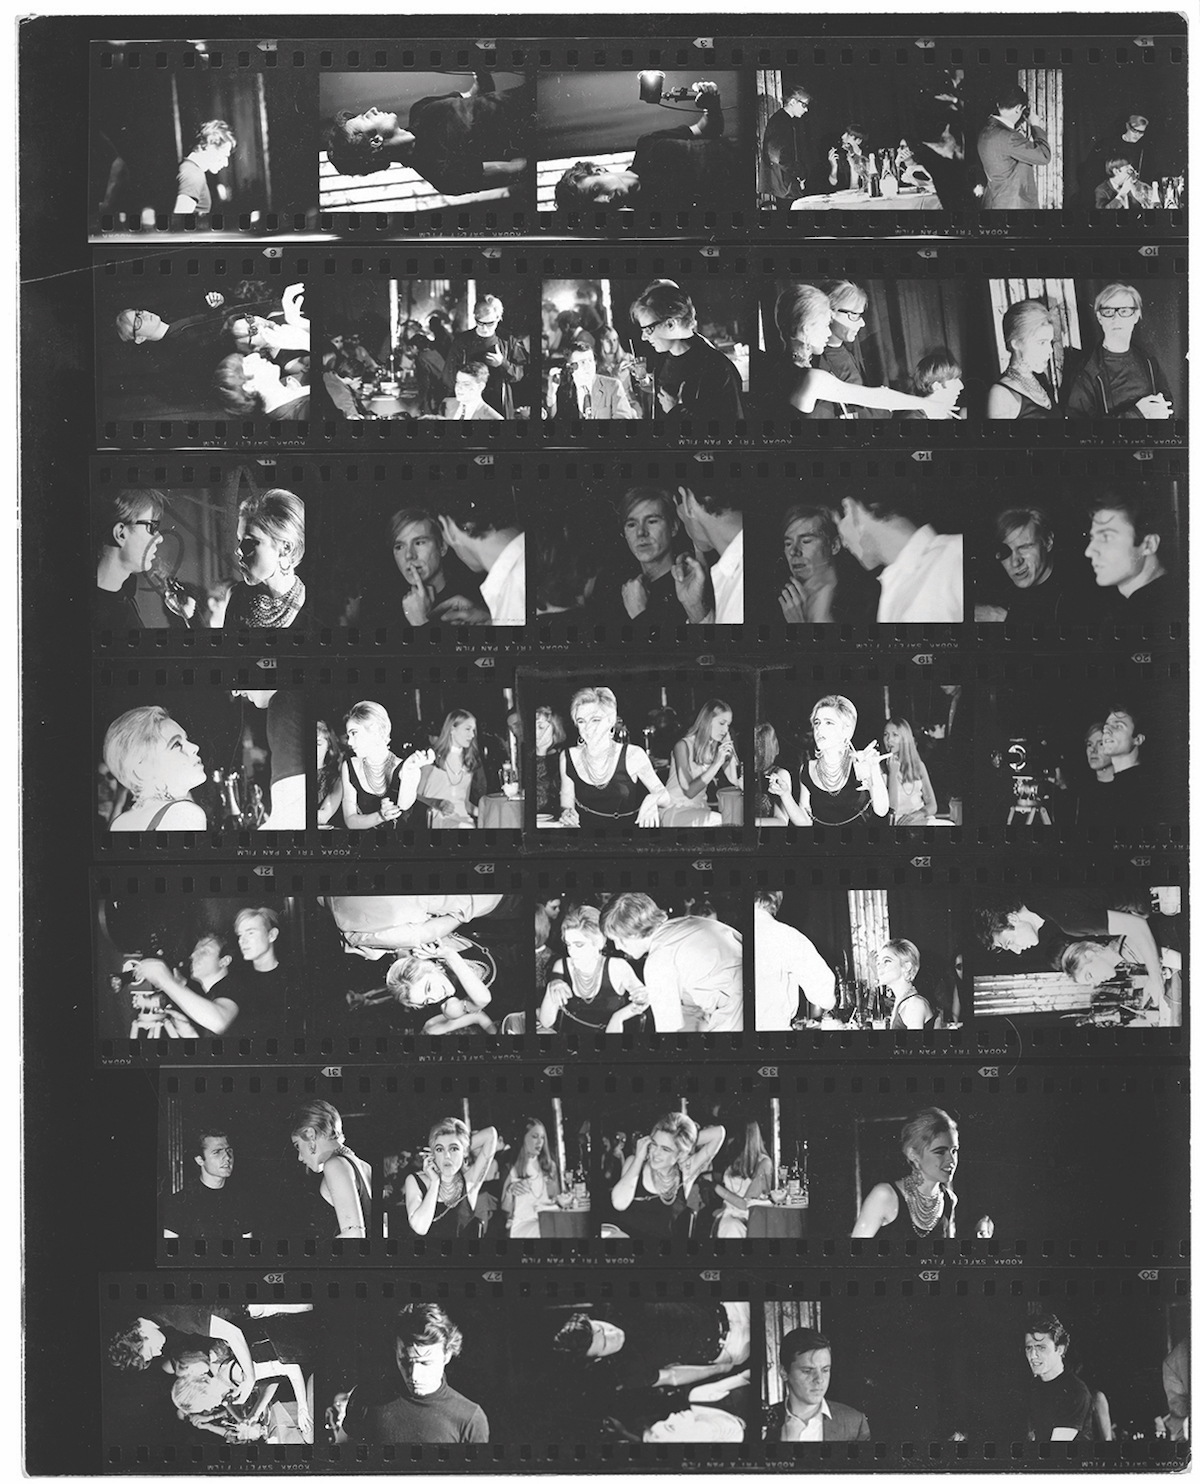 017-Contact-sheet-From-Shore's-first-shoot-at-L'Avventura